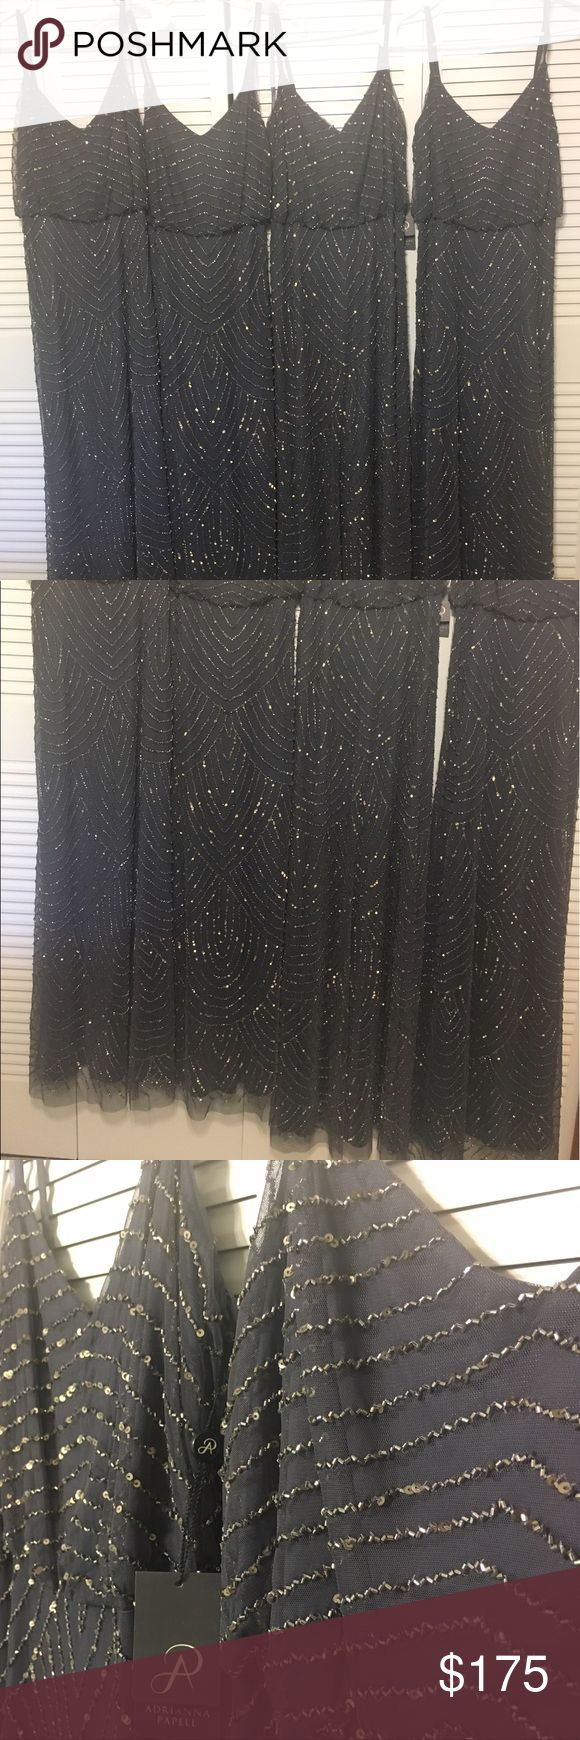 Adrianna Papell Long Dresses Adrianna Papell Art Deco Beaded Blouson Gown in Gunmetal color.  Was gonna used them for my Bridesmaids....Available Sizes: 0, 2Petite, 6 & 6Petite.  All Brand New, Never Used. Adrianna Papell Dresses Maxi